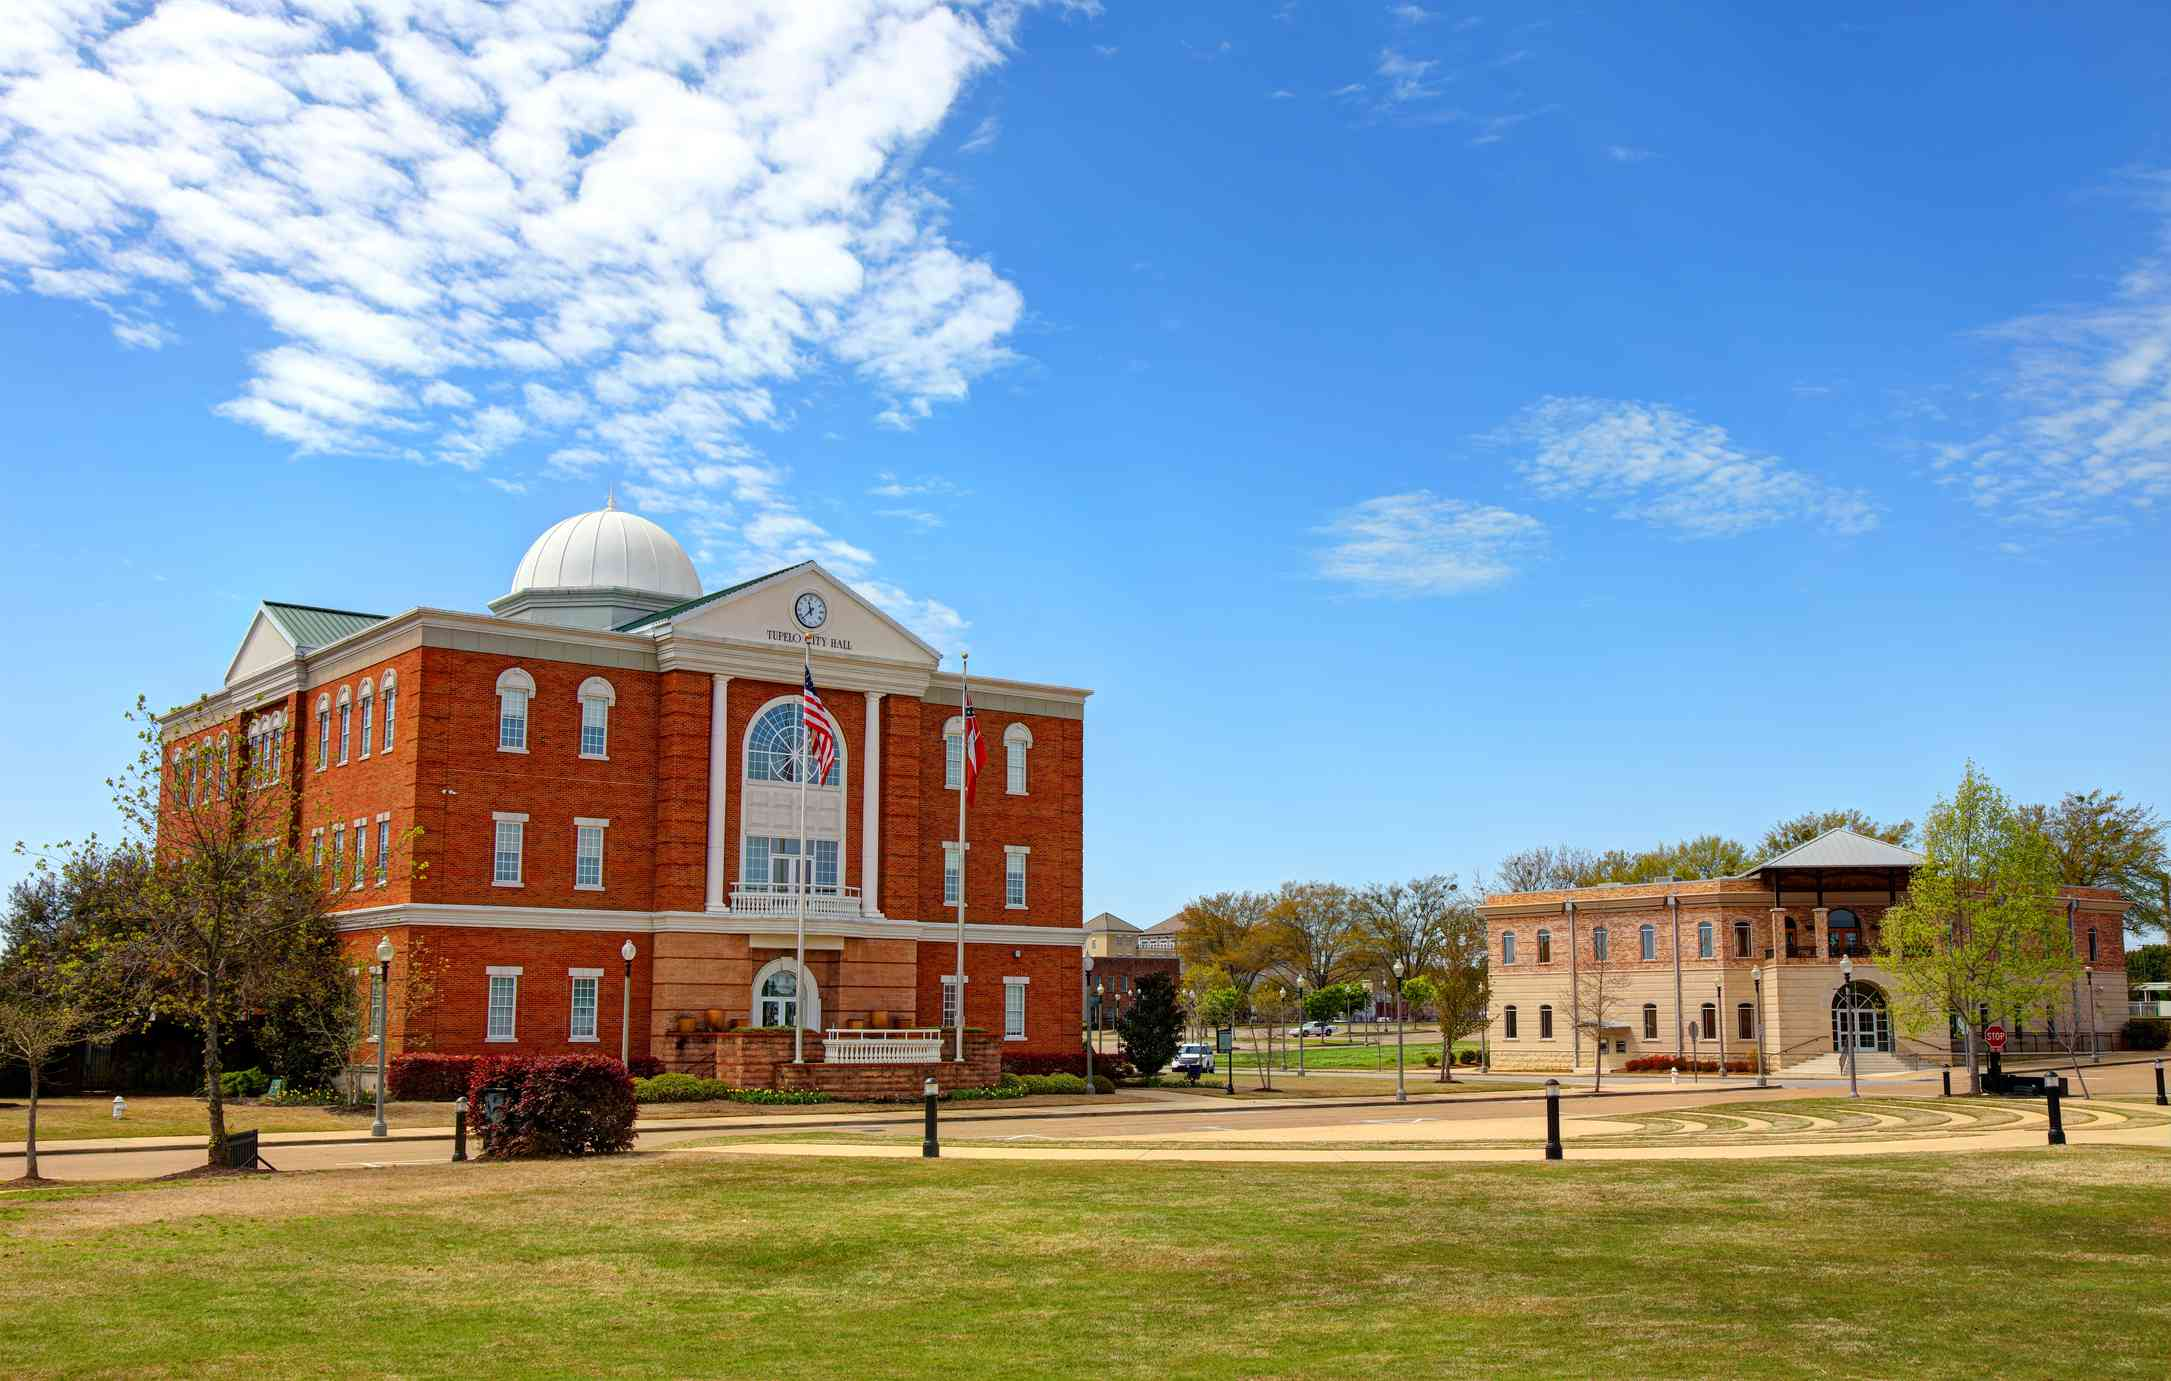 red brick city hall in front of an empty field on a clear day